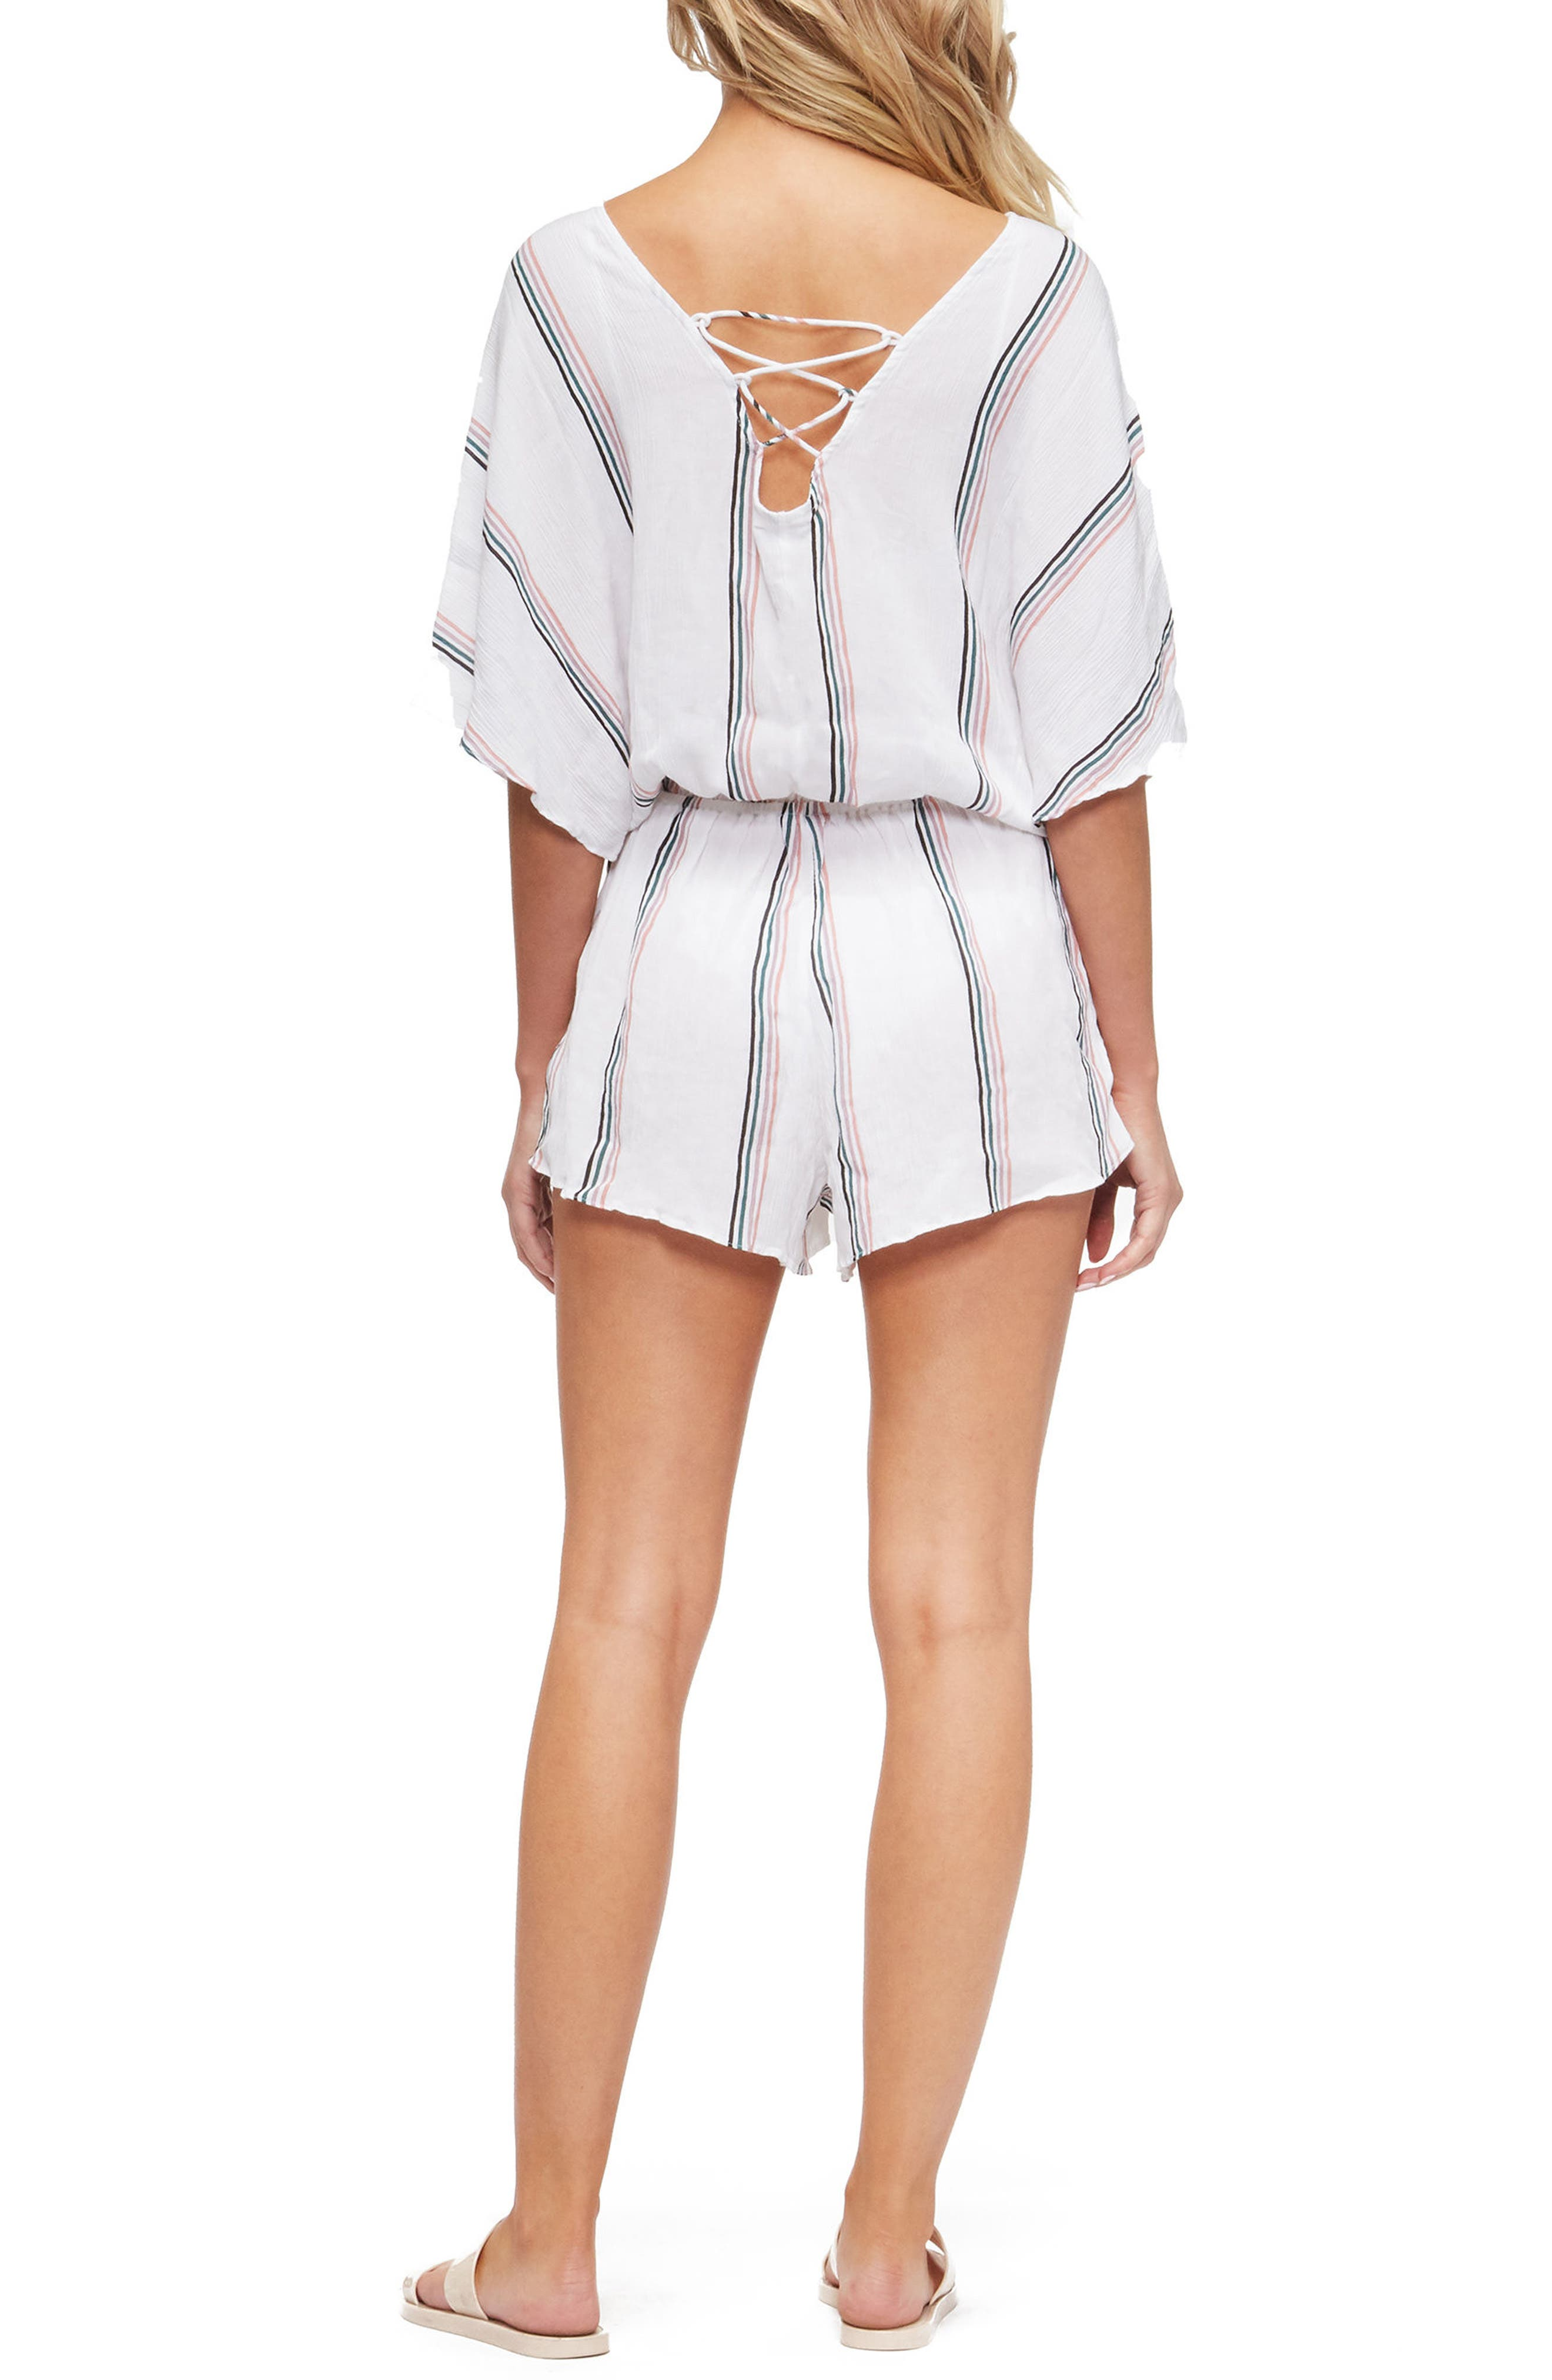 Harmony Cover-Up Romper,                             Alternate thumbnail 2, color,                             831